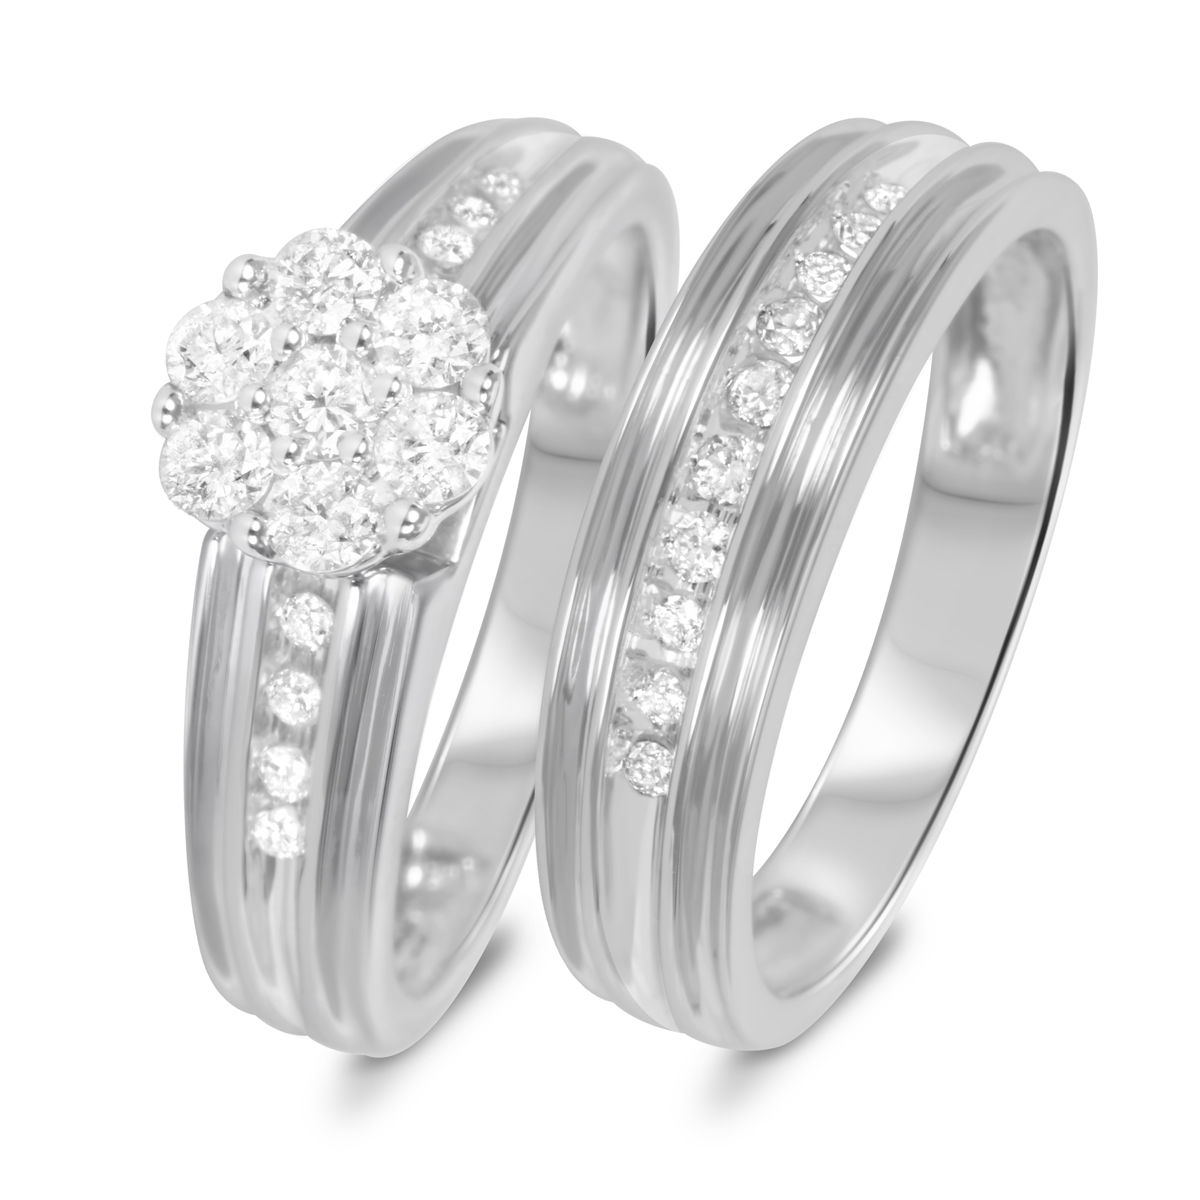 2/3 Carat T.W. Diamond Women's Bridal Wedding Ring Set 10K White Gold